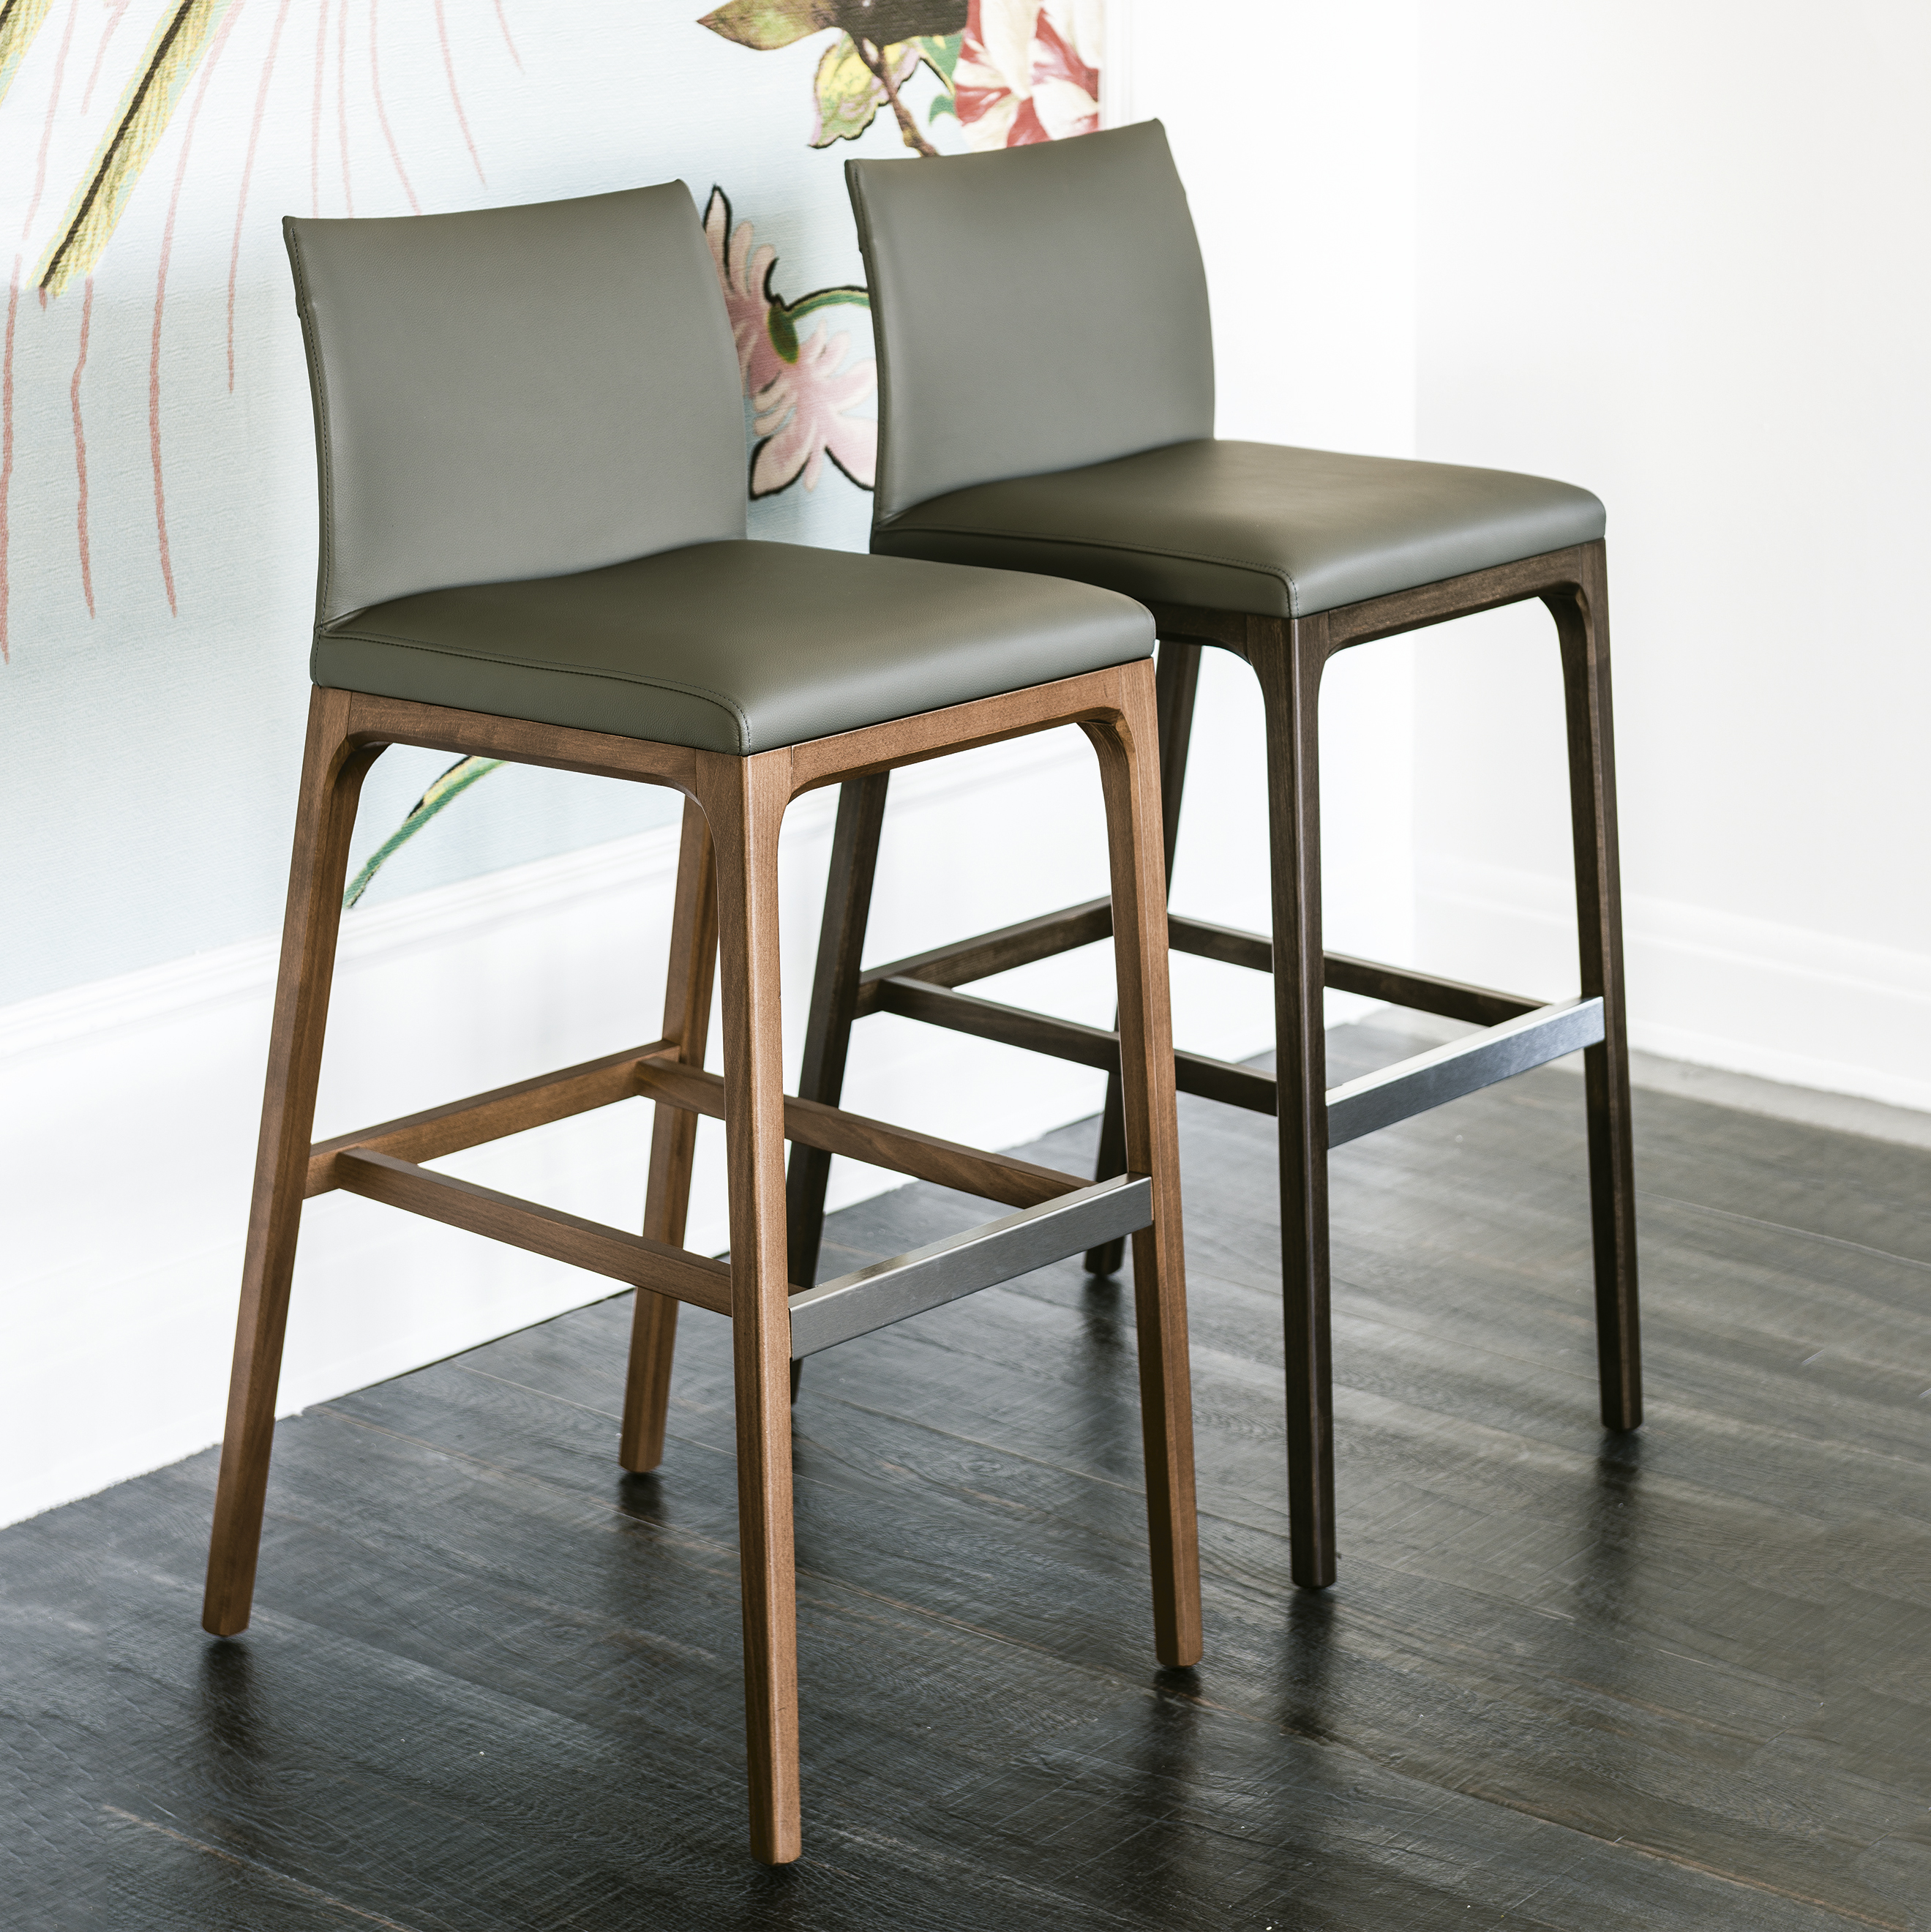 Arcadia luxury contemporary stool italian designer for High end counter stools